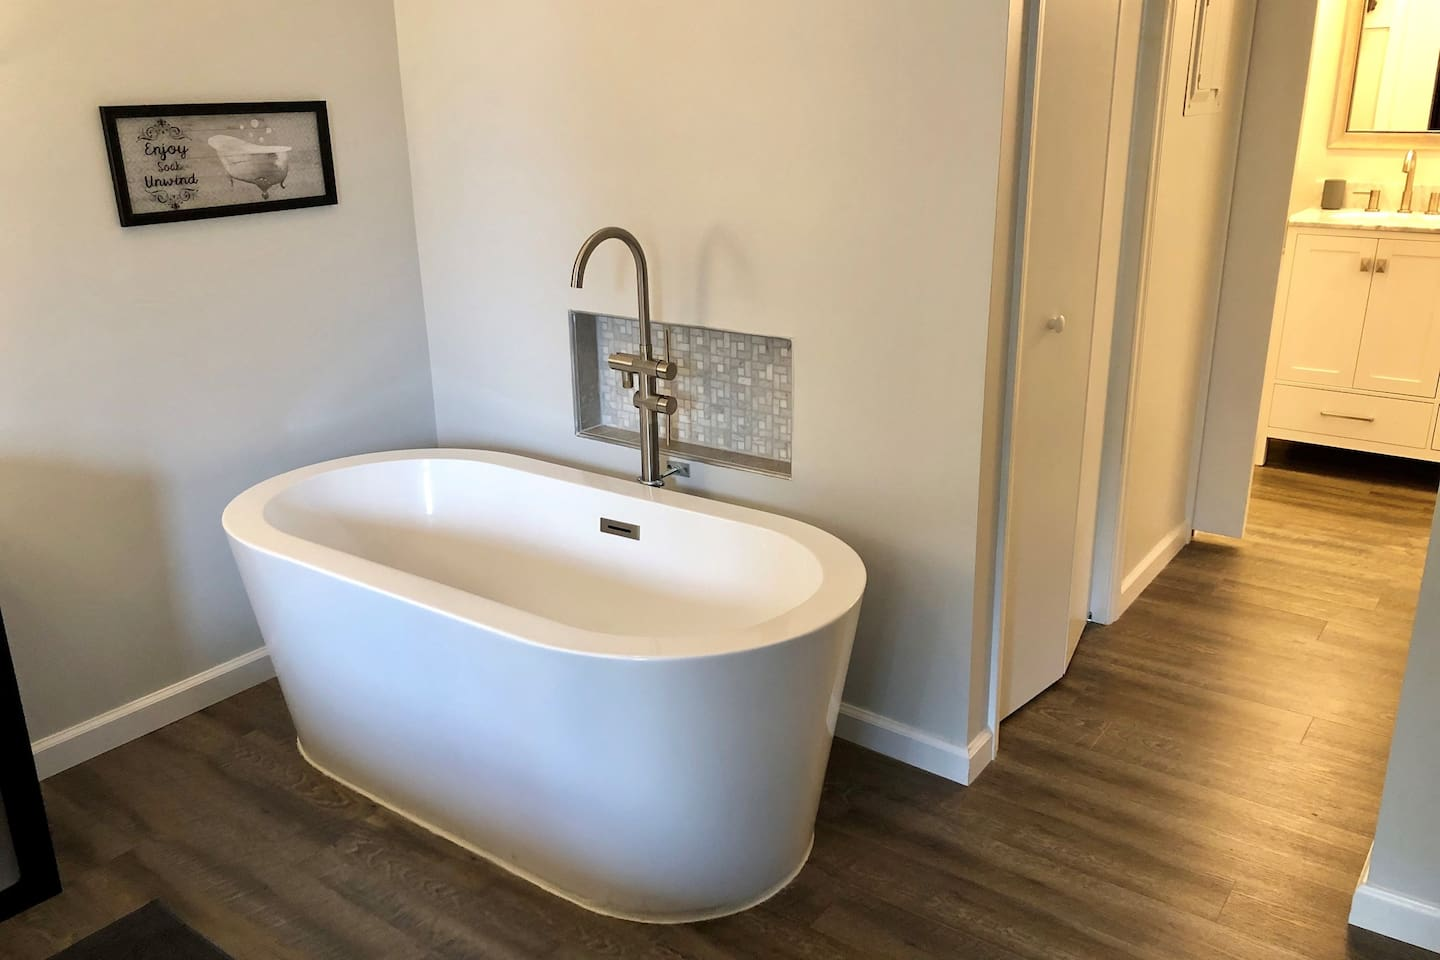 Beautiful one person soaking tub in Bedroom. Relax in peace and quiet while enjoying the fireplace or watching the Tv mounted above the fireplace.